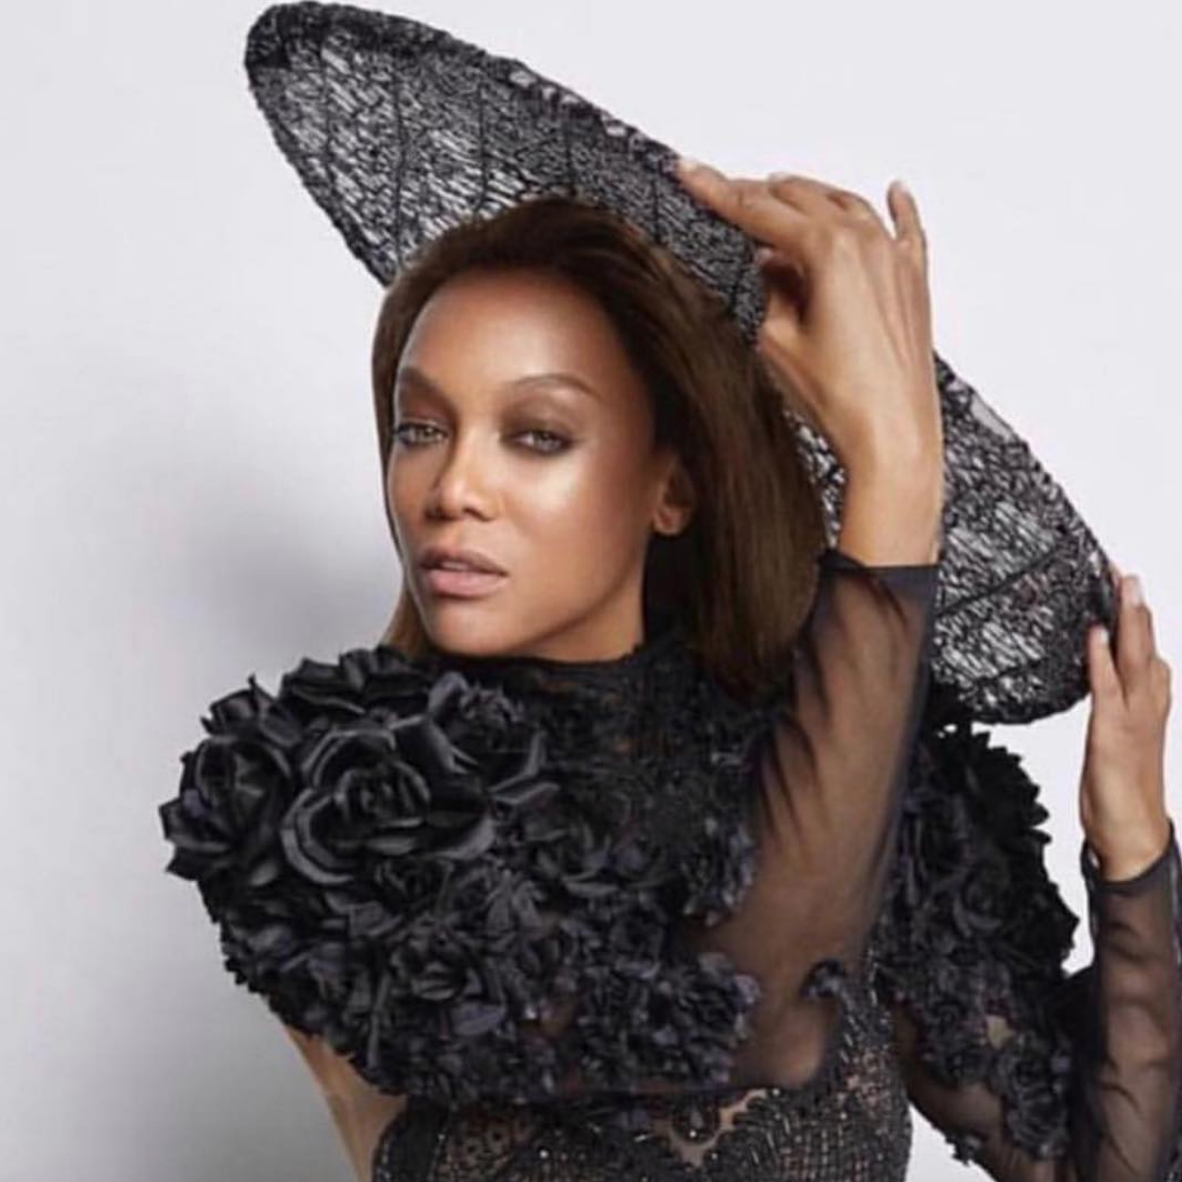 #bts  with American superstar  @tyrabanks  wearing a hat from our designer  @aida.novosel  and a flower shoulder piece by our designer  @lorysunartistry  Styled by  @jstylela  All fashions provided by  #ivanbittonstylehouse